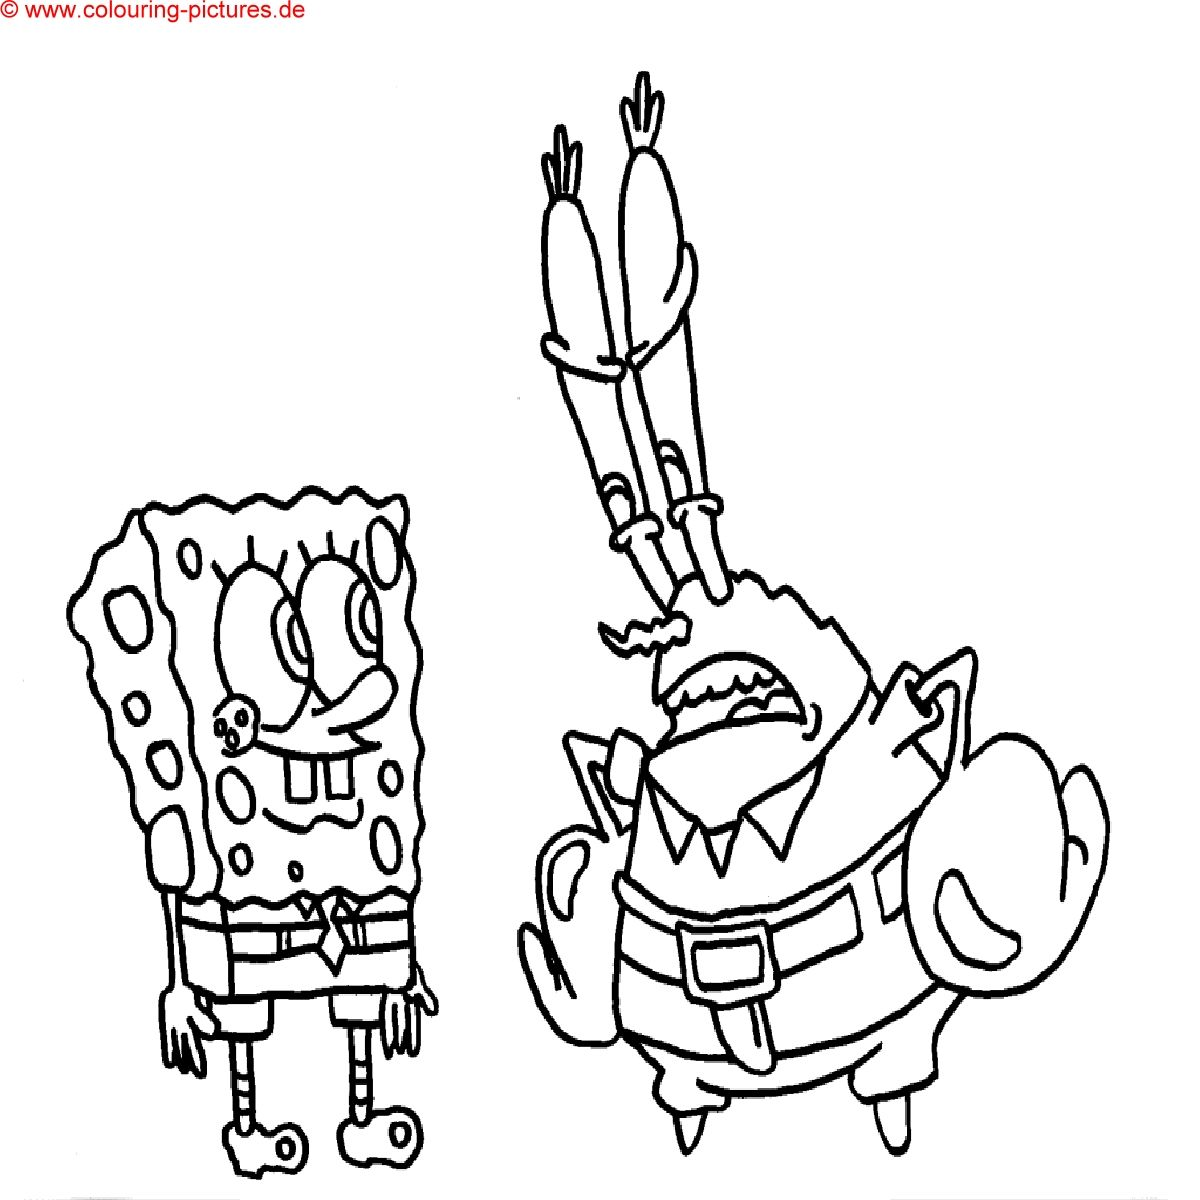 Ausmalbilder Zum Ausdrucken Sponge Bob Spongebob Coloring Mr Krabs Coloring Pages